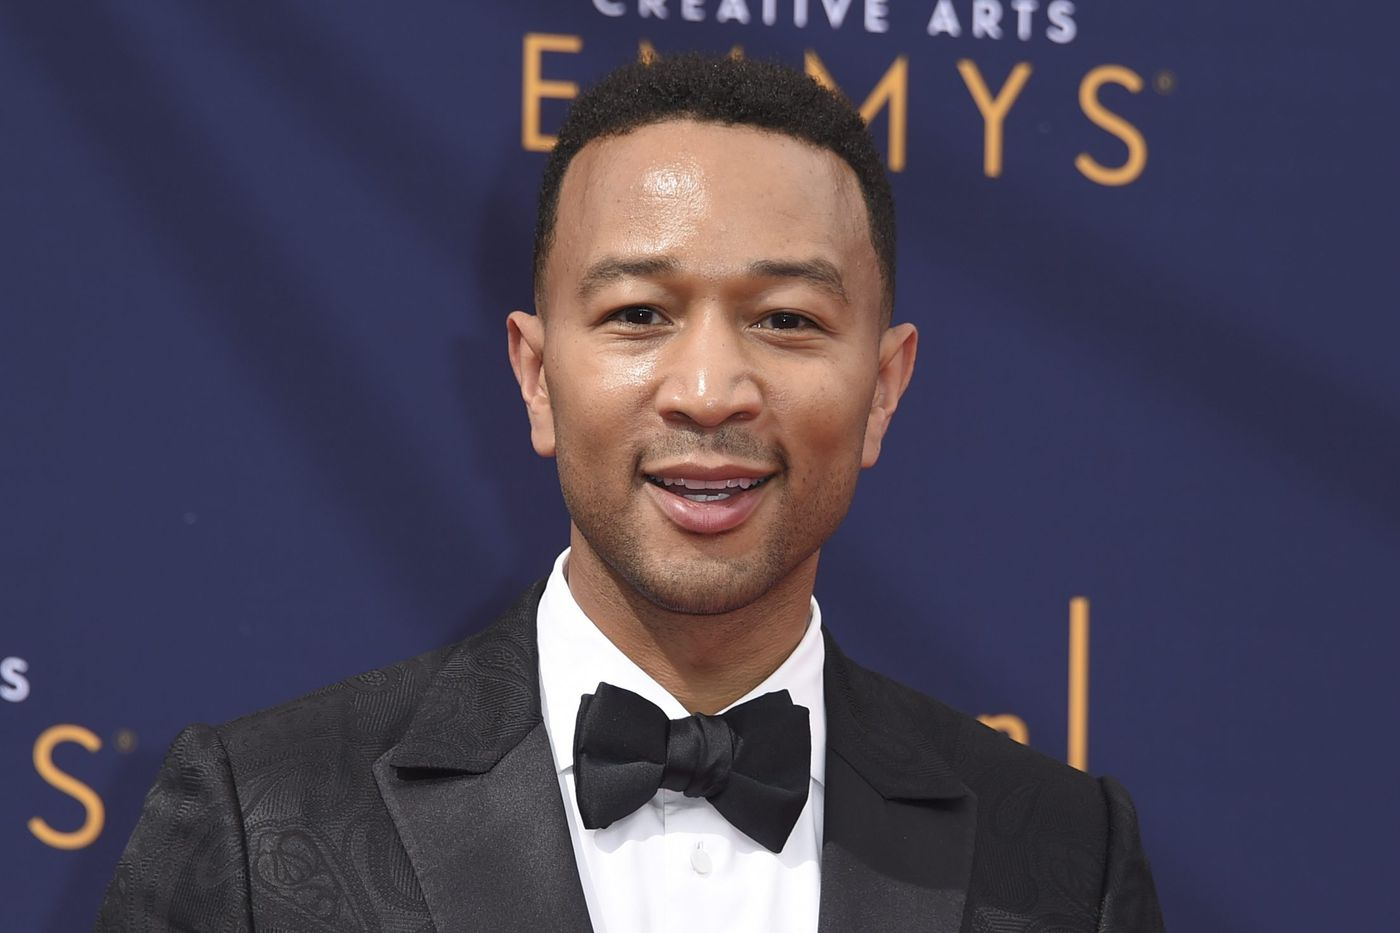 John Legend Becomes EGOT Winner Following Emmy Win for 'Jesus Christ Superstar'